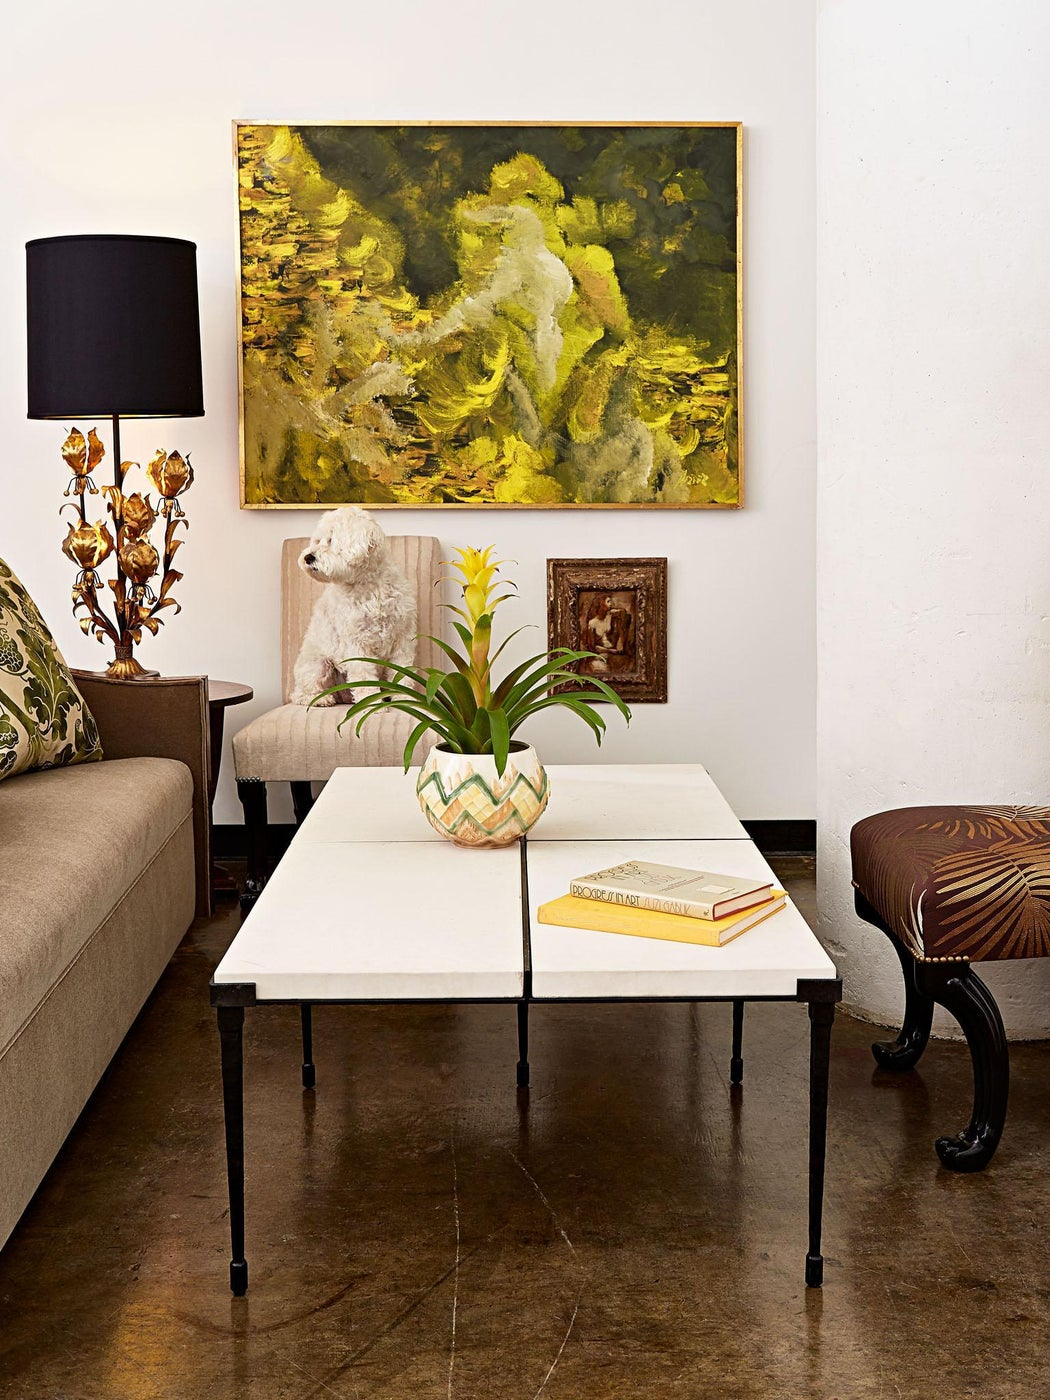 A loft's lounge is layered in tones of green and mustard against a crisp white backdrop and accented by many textures including gilt, marble, ceramic, velvet, concrete, and rich mahogany.